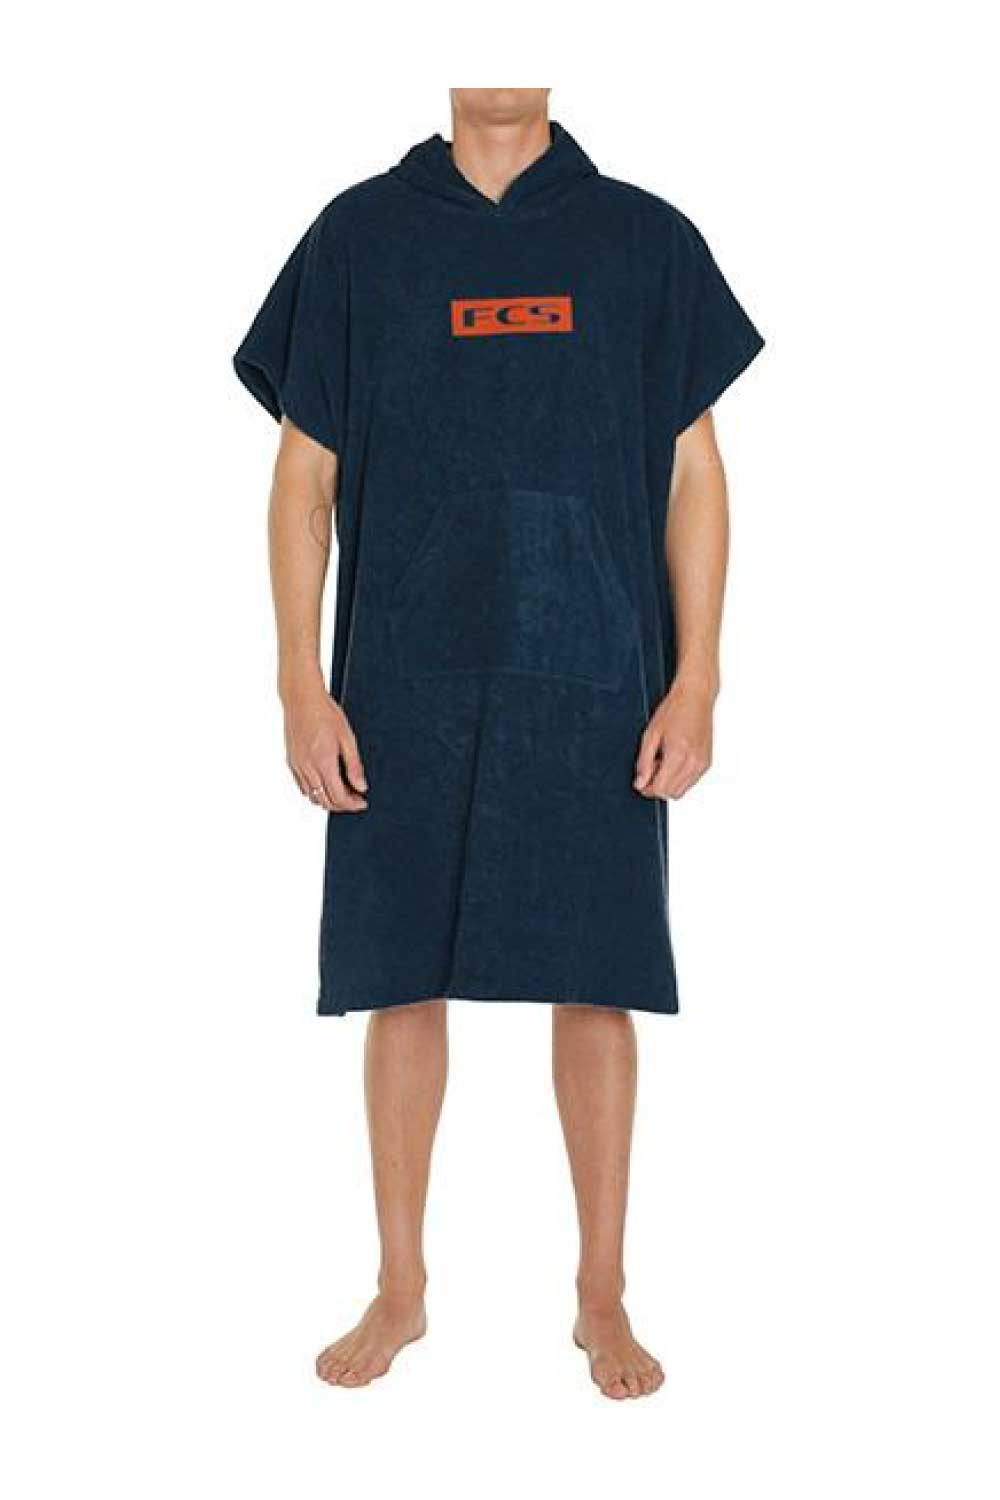 FCS Junior Kids Poncho Towel